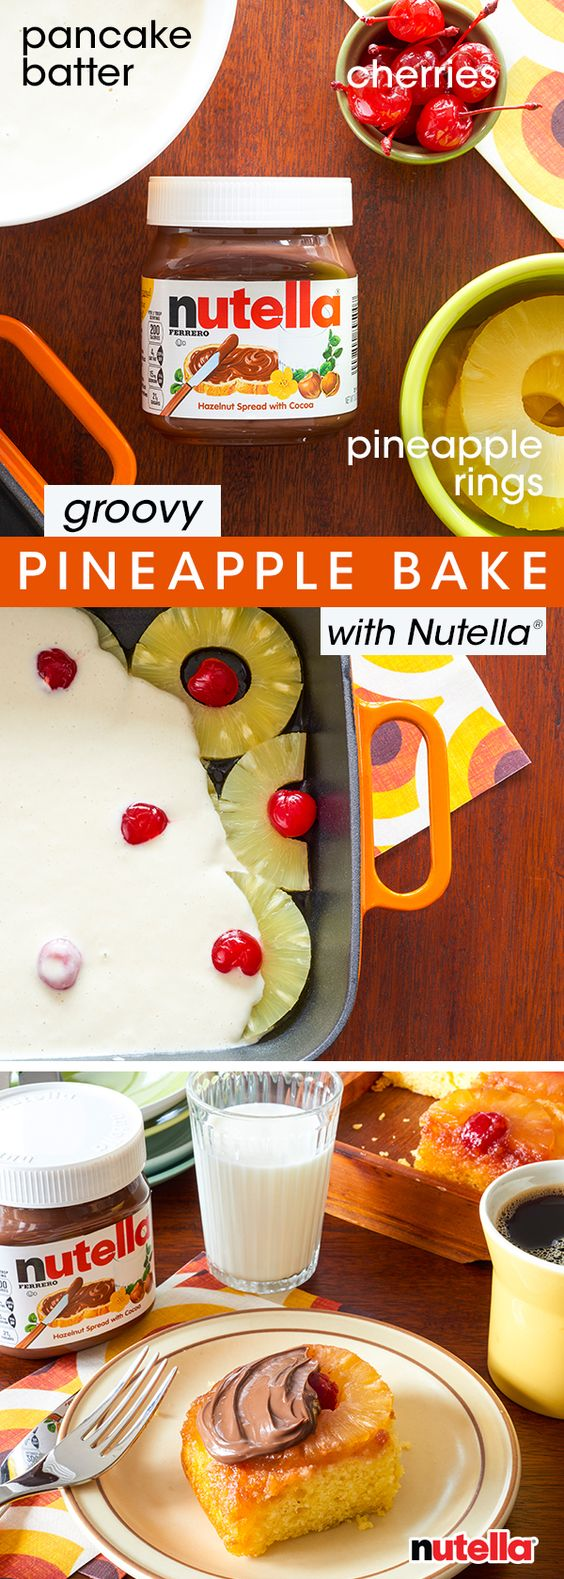 Pinterest step-by-step recipe post.